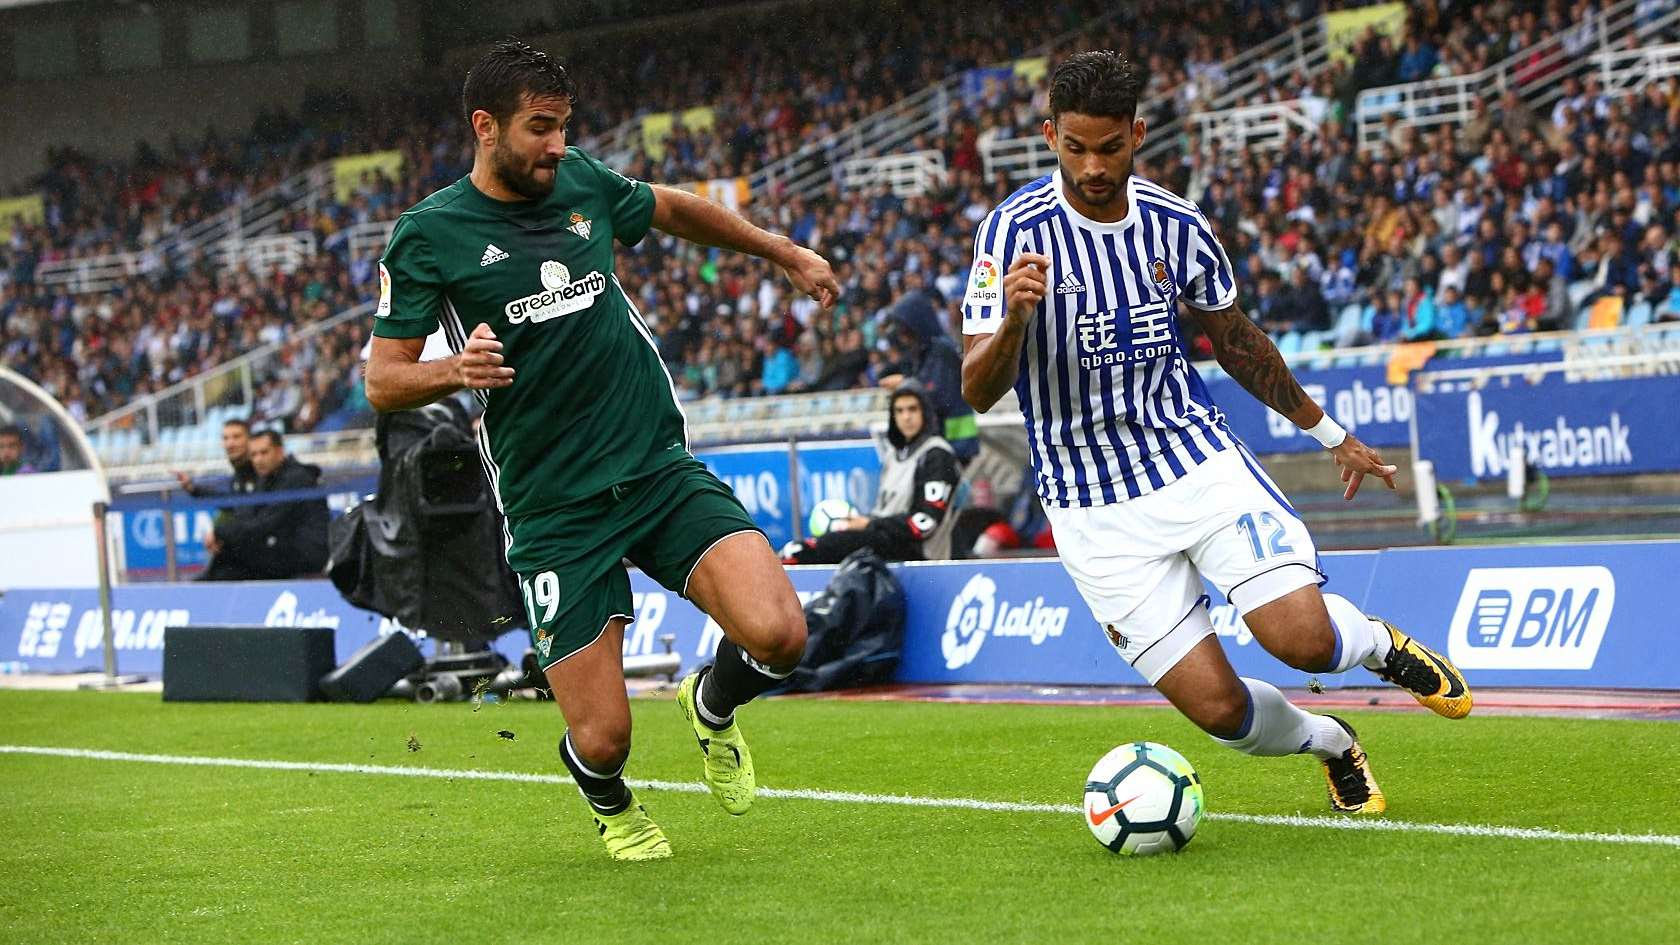 Real Sociedad vs Real Betis Betting Predictions